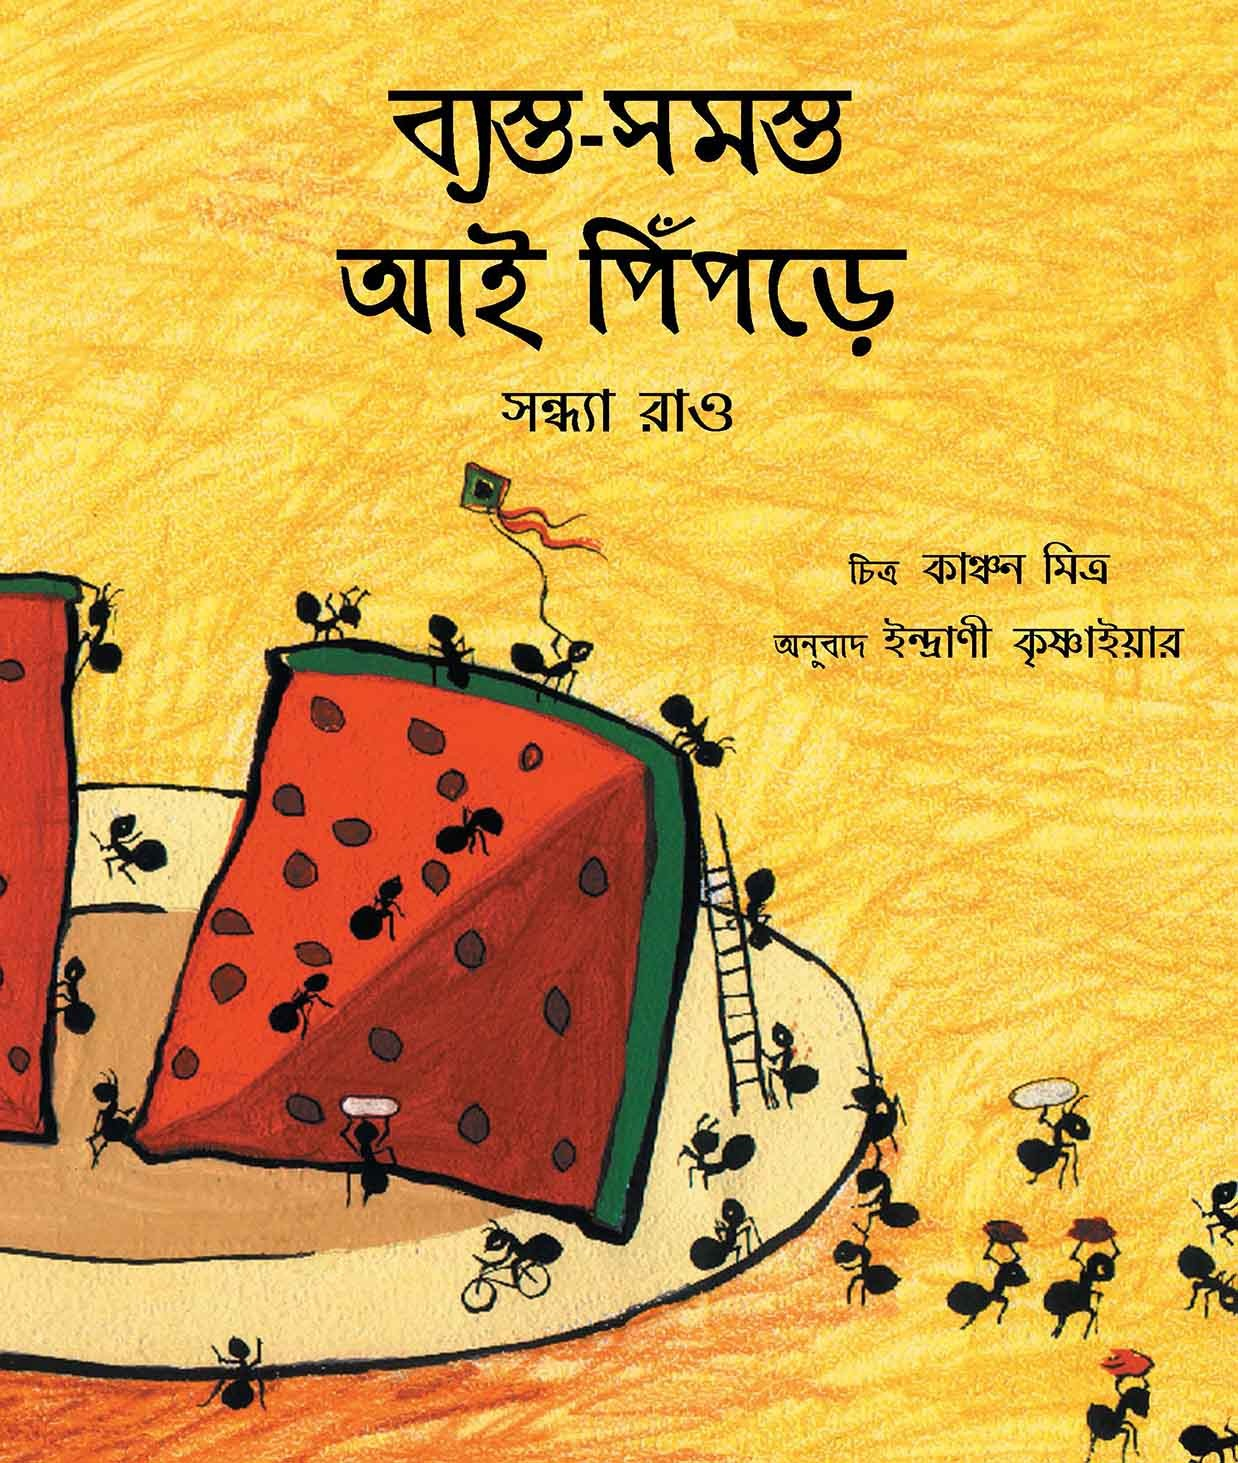 Busy Busy Grand-Ant/Byasto-Shomosto Aai Pinpdey (Bengali)